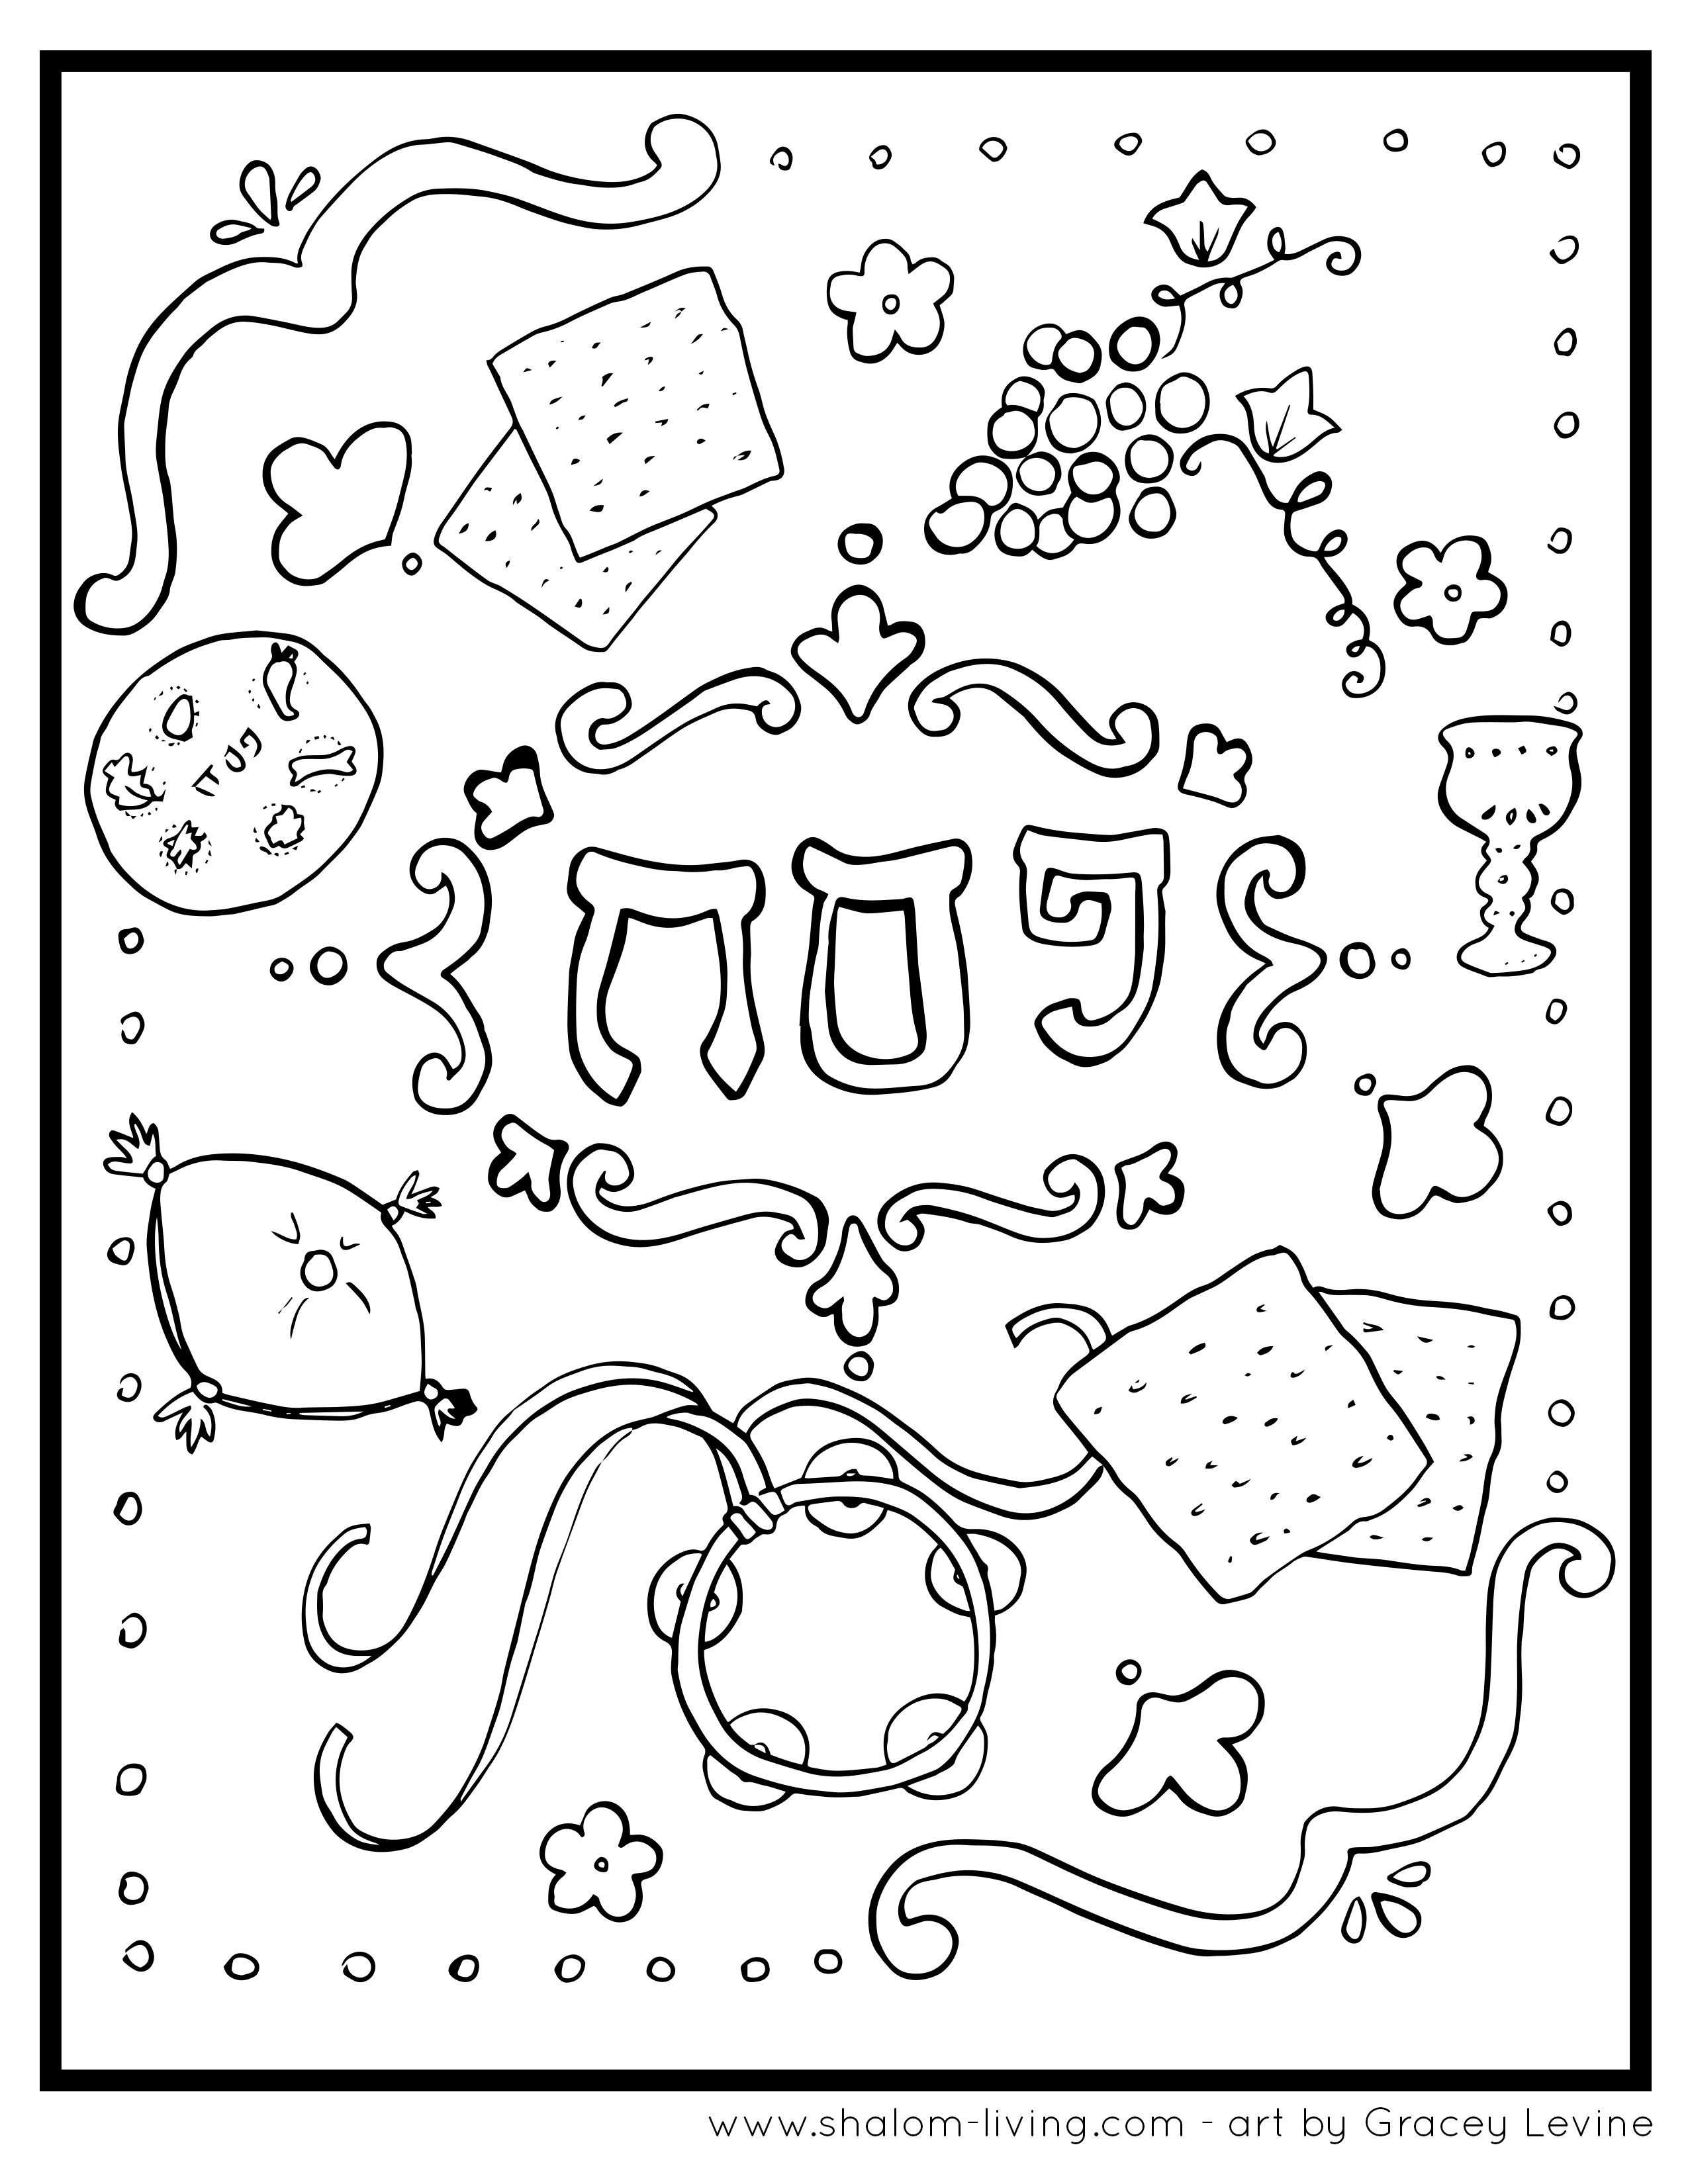 Free Passover coloring pages at Shalom Living! | Passover | Pinterest